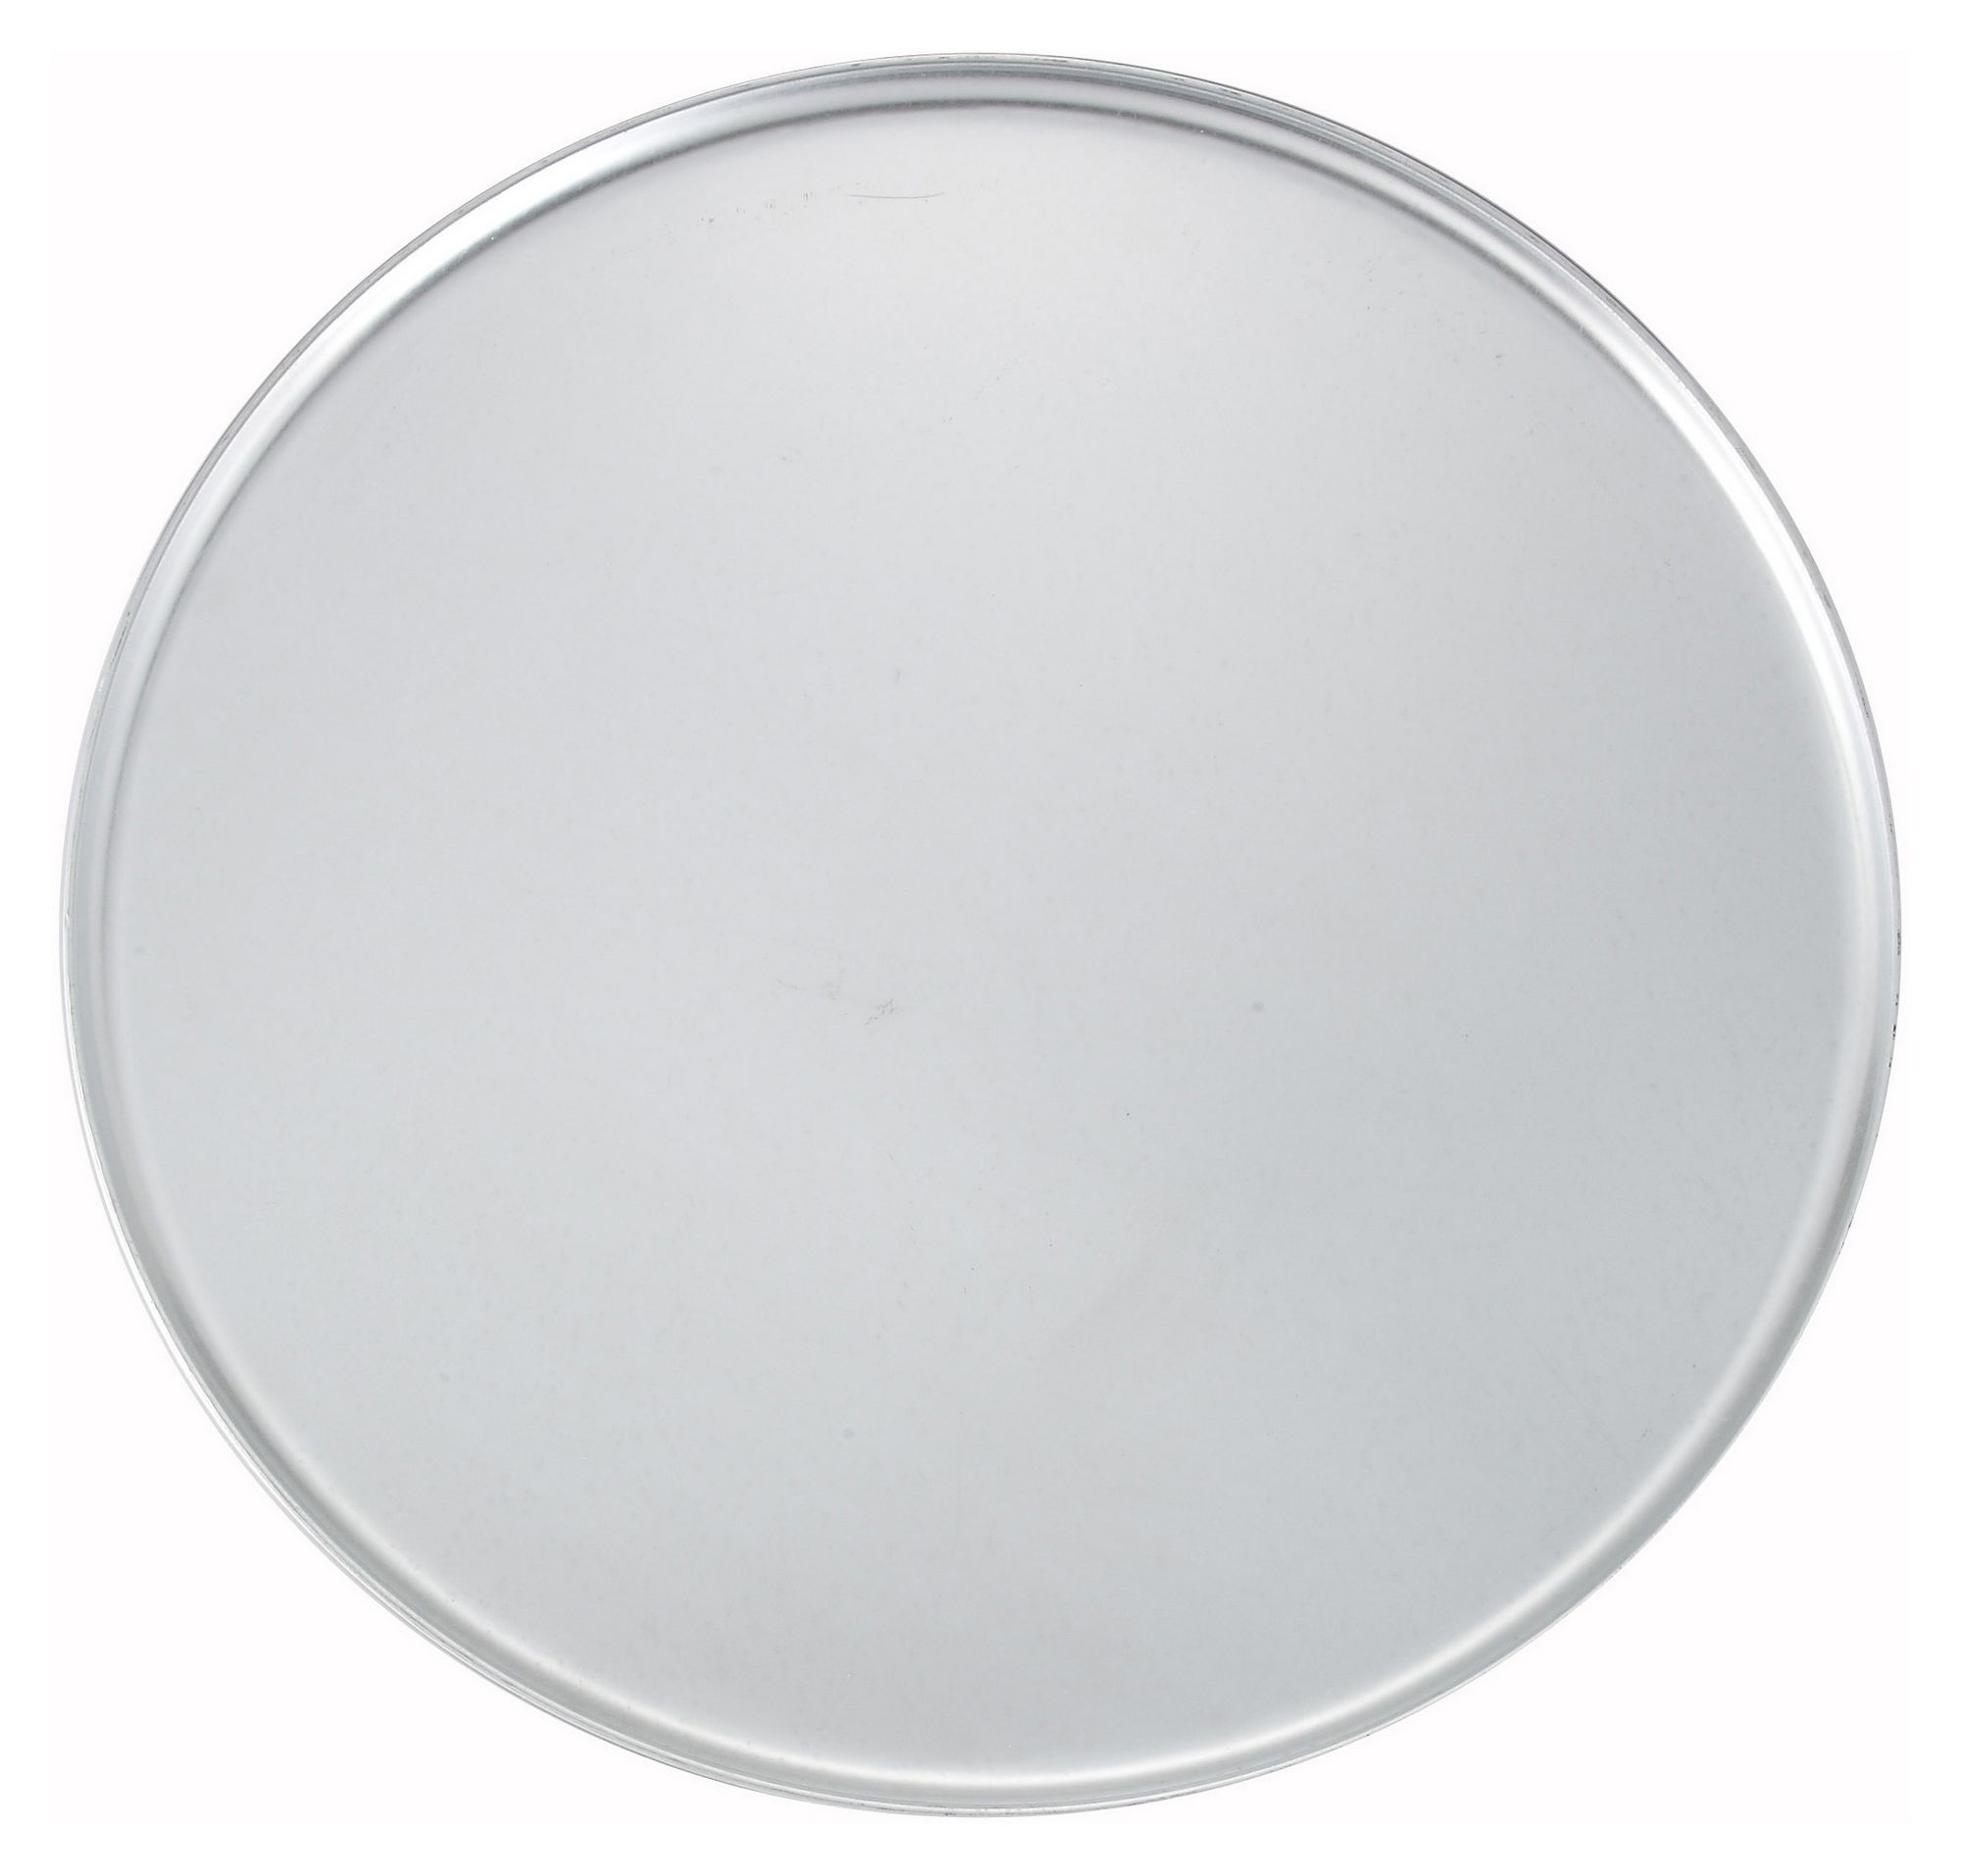 Coupe-Style Aluminum Pizza Pan - 16